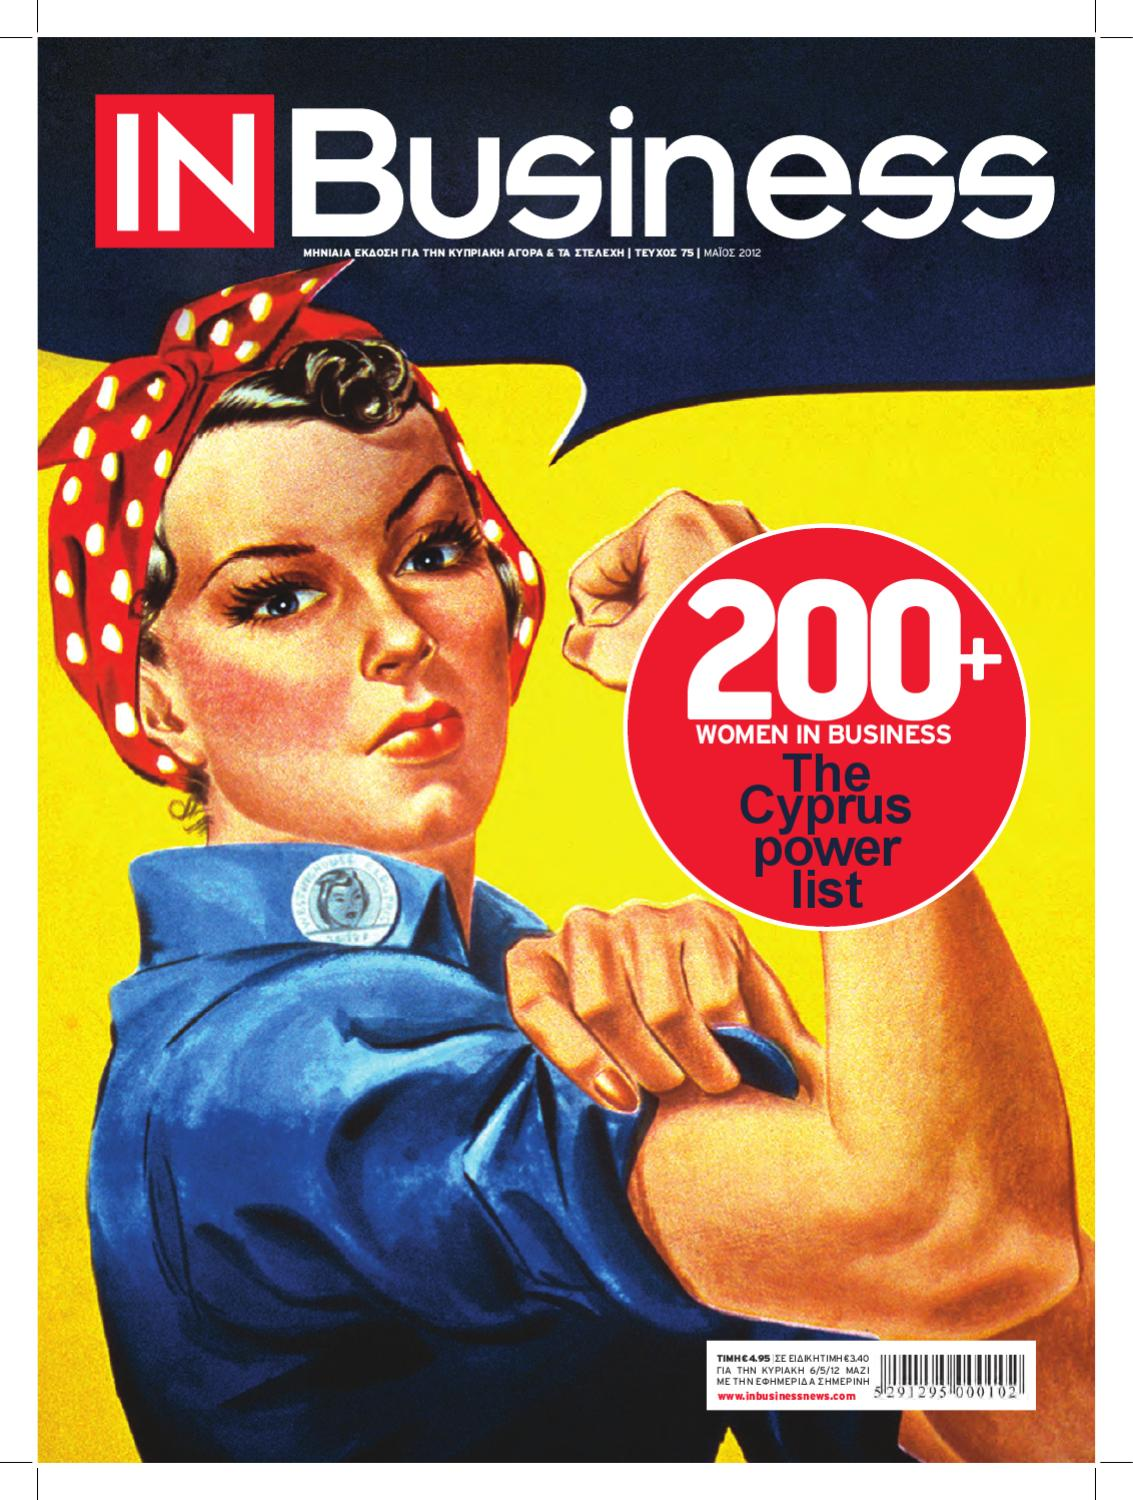 Inbusiness May by INBusiness issuu